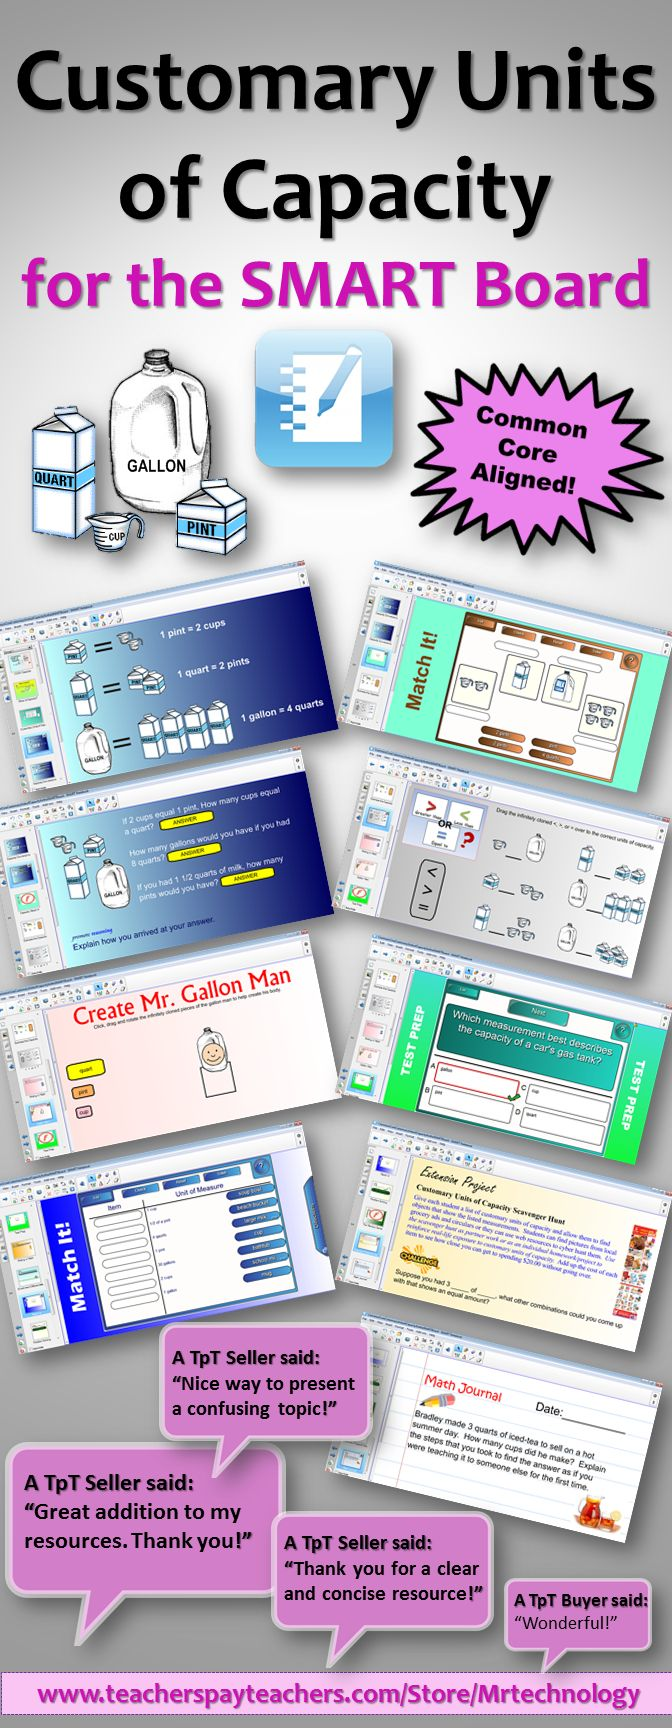 This interactive CCSS Customary Units of Capacity SMART Board lesson introduces students to the basic units of capacity. Students explore interactive activities such as a 'Memory' game, 'Match It!' game, a <, >, or = comparison , Test Prep, and 'Build Mr. Gallon Man'. This lesson also includes 'Writing in Math' and differentiated enrichment problem solving questions, an extension project / Scavenger Hunt Challenge and a 'promote reasoning' slide.